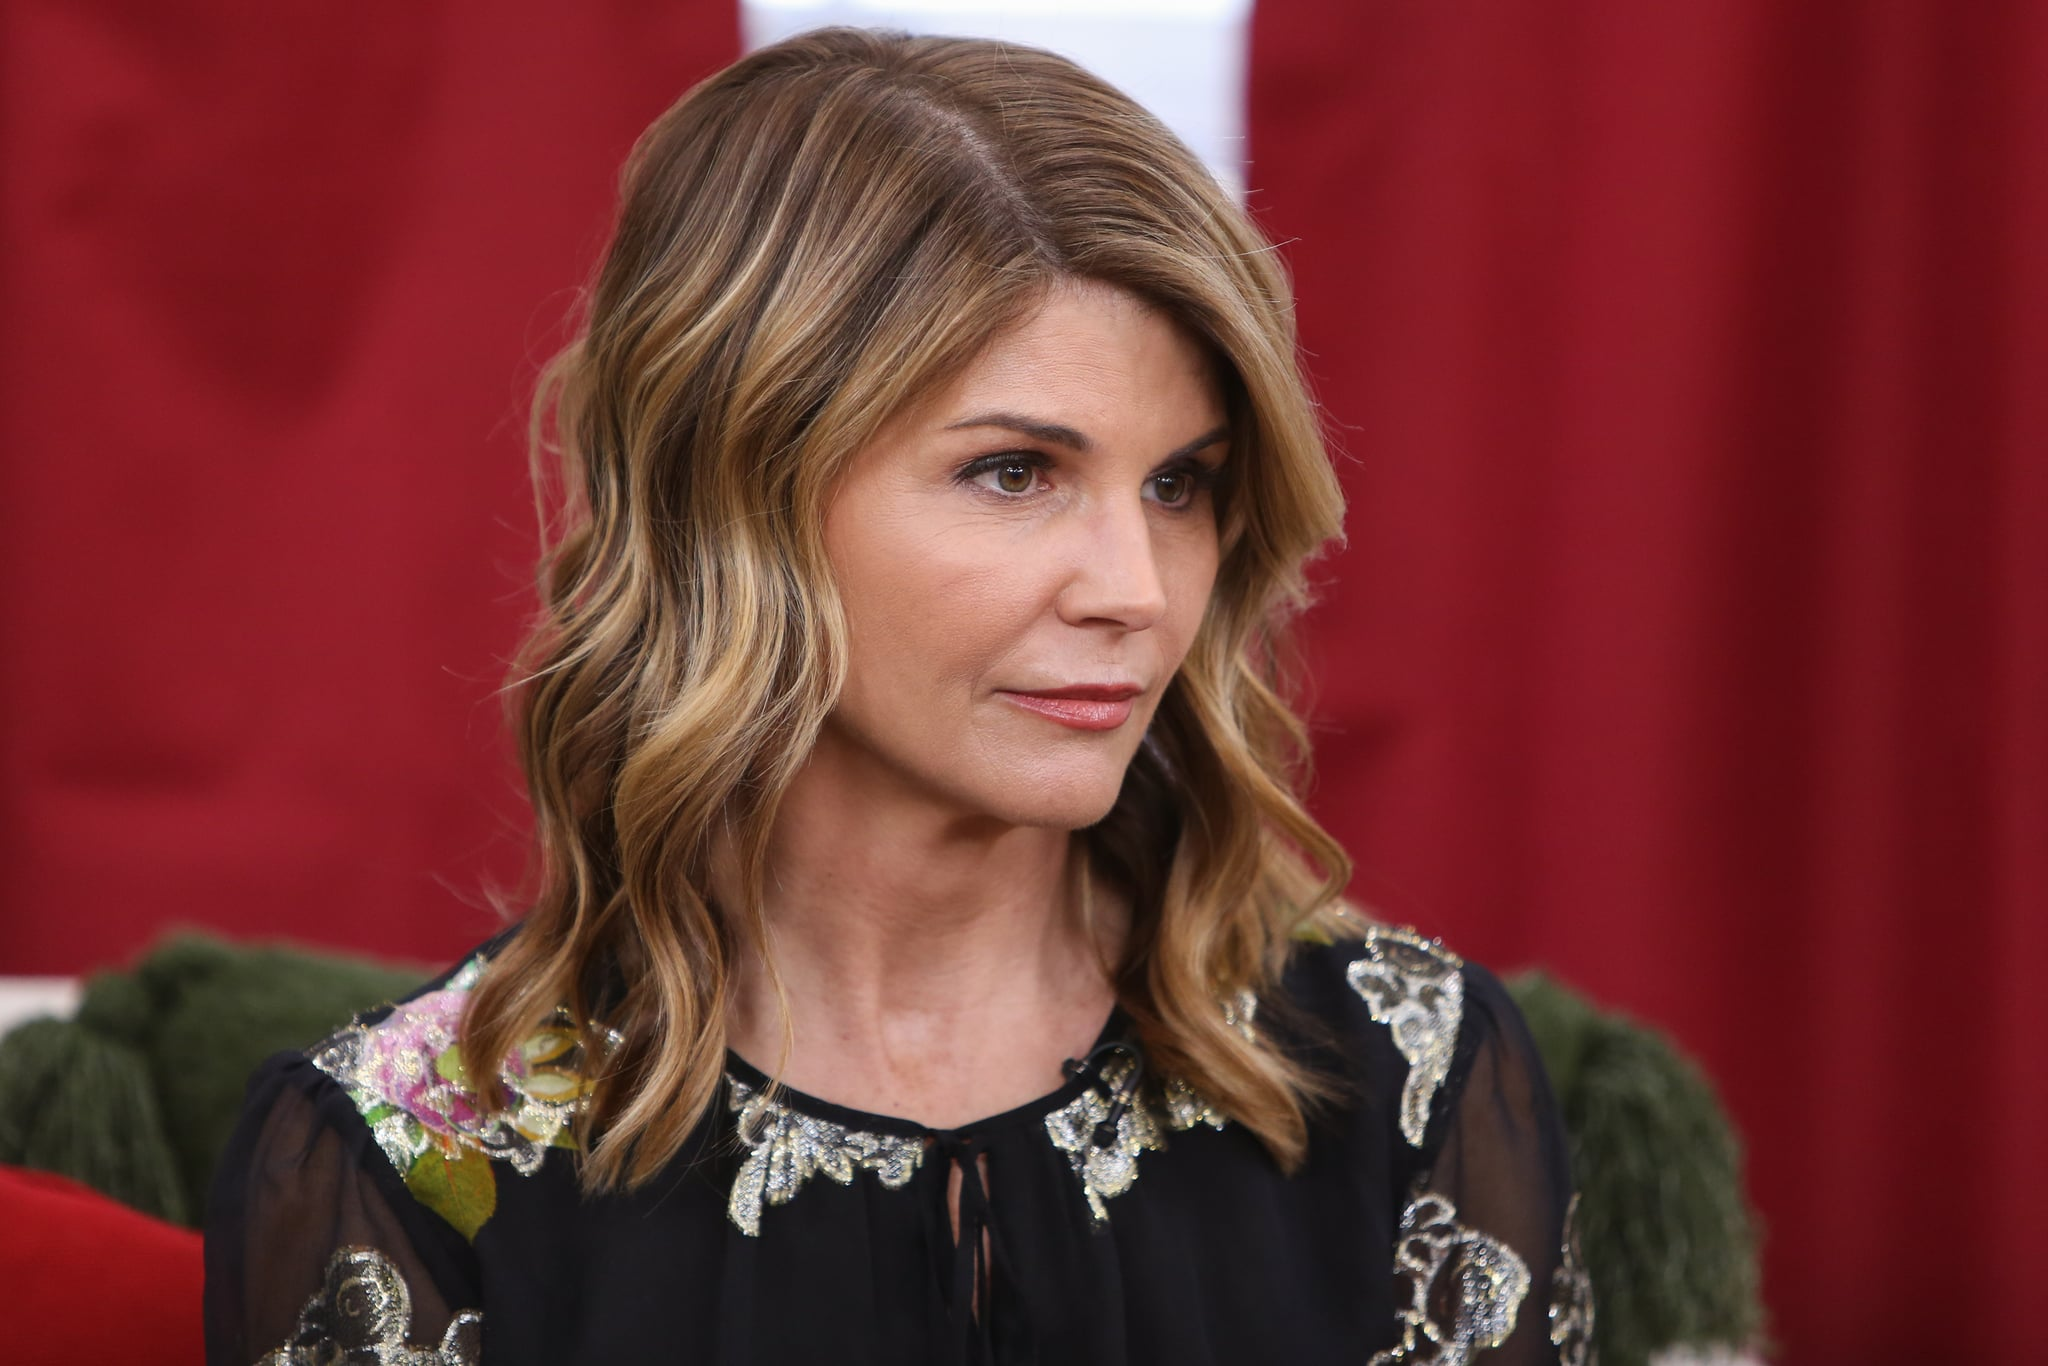 UNIVERSAL CITY, CALIFORNIA - DECEMBER 19: Actress Lori Loughlin visits Hallmark's